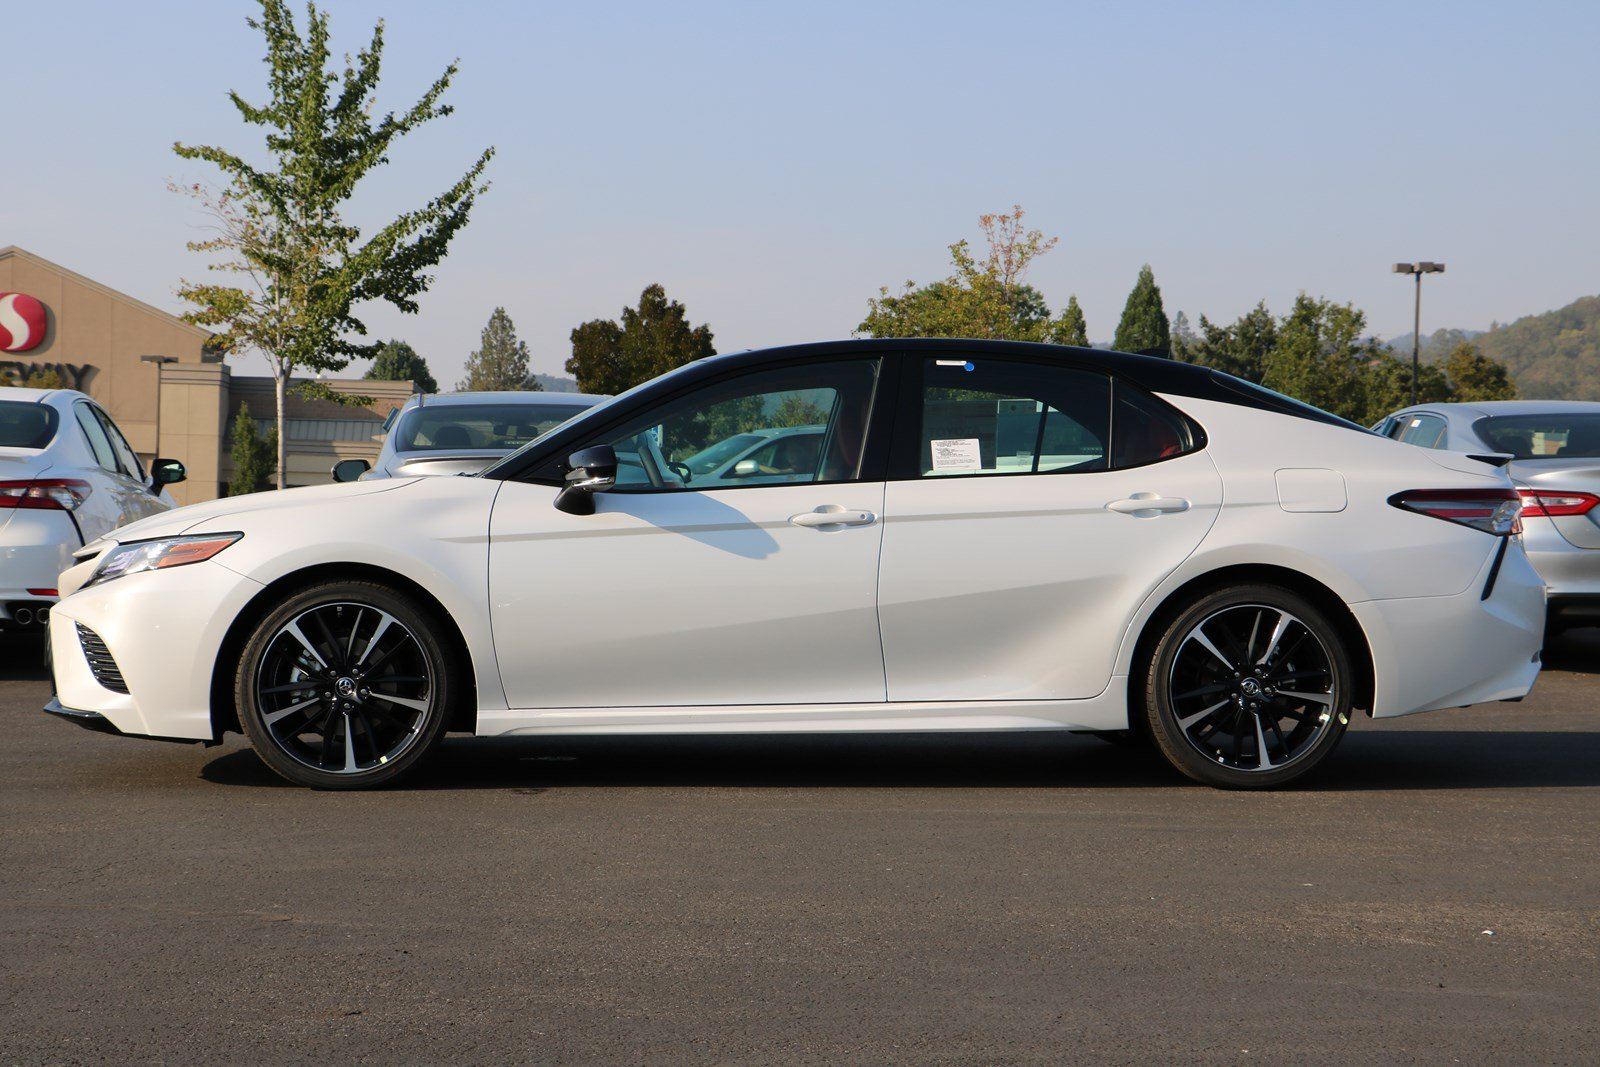 New 2018 Toyota Camry XSE V6 4dr Car in Roseburg #T18016 | Clint Newell Toyota